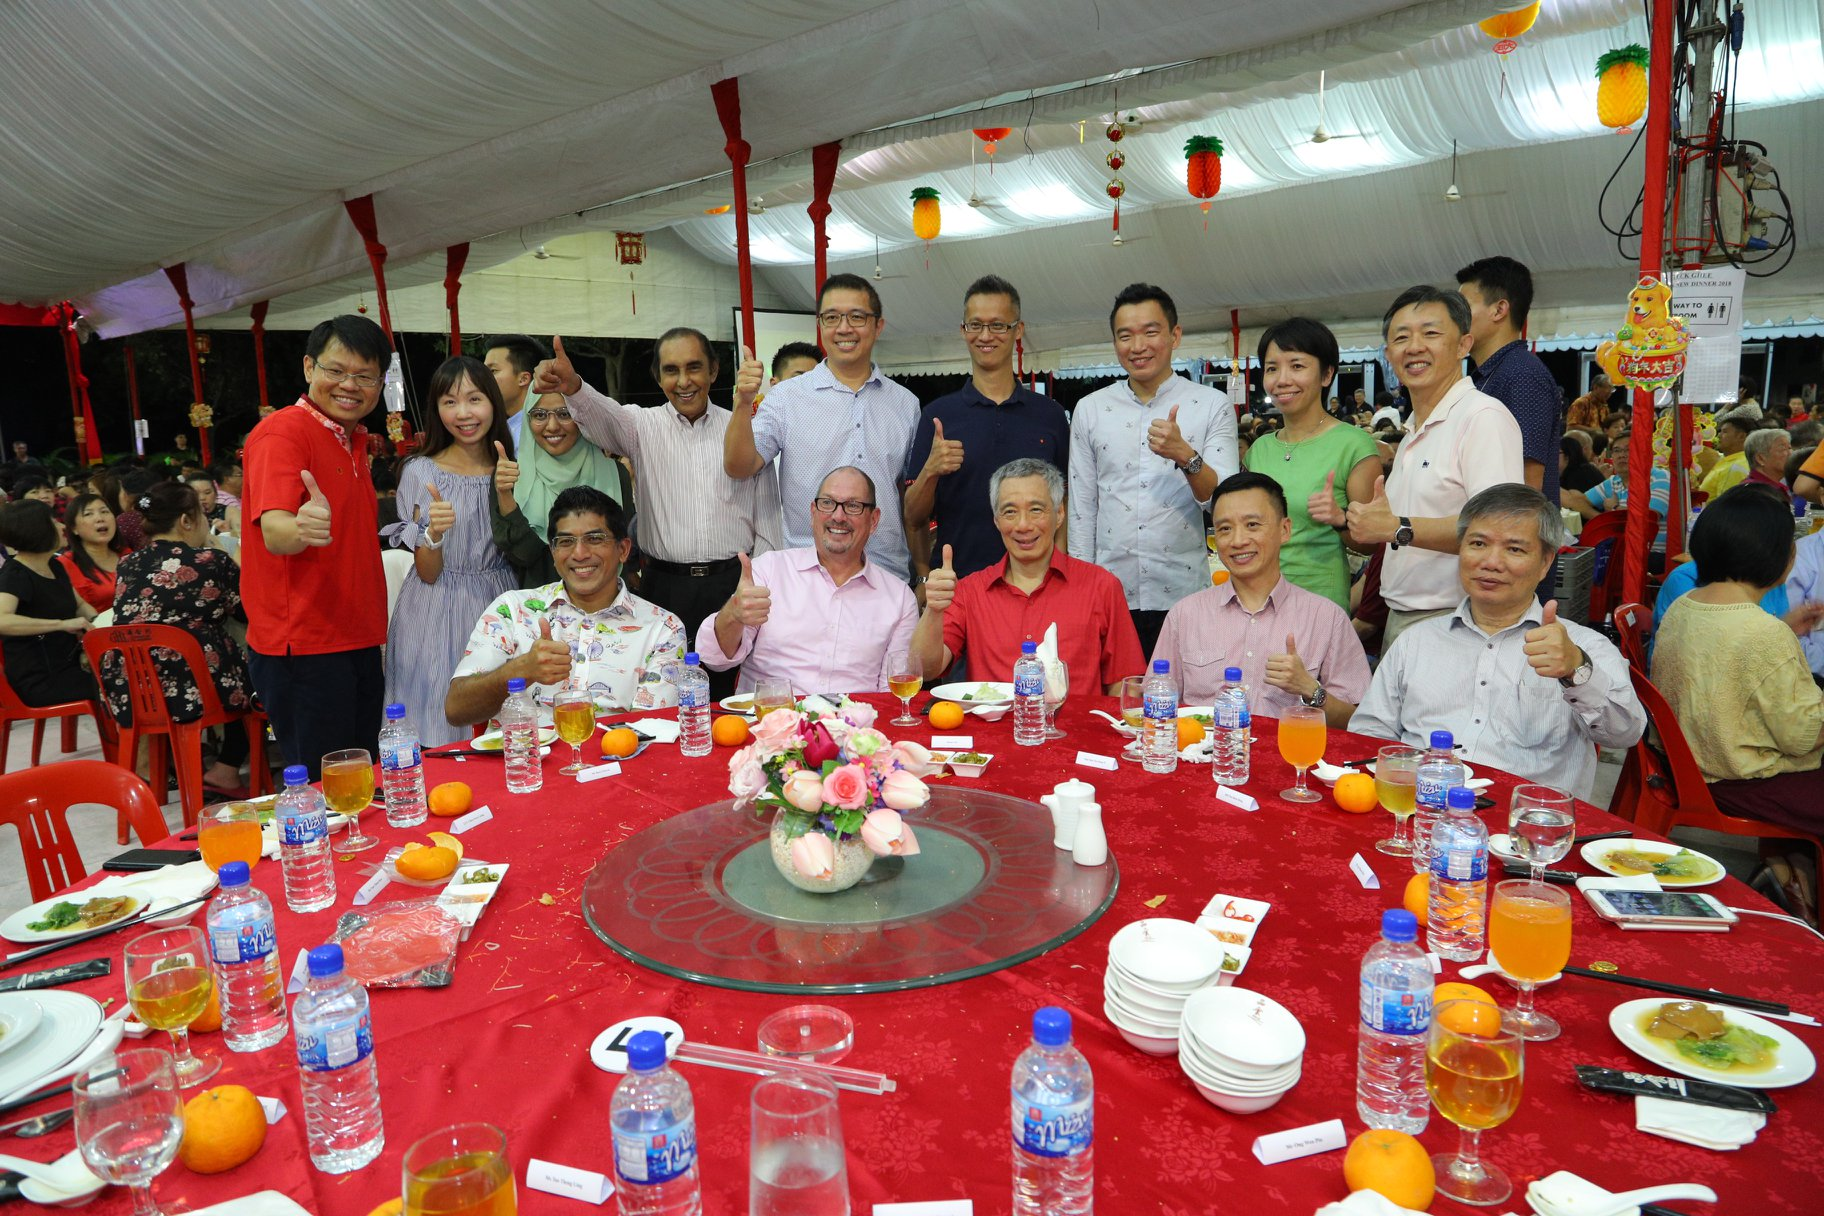 Prime Minister Lee Hsien Loong at the Teck Ghee Chinese New Year dinner. Photo courtesy: LHL FB page